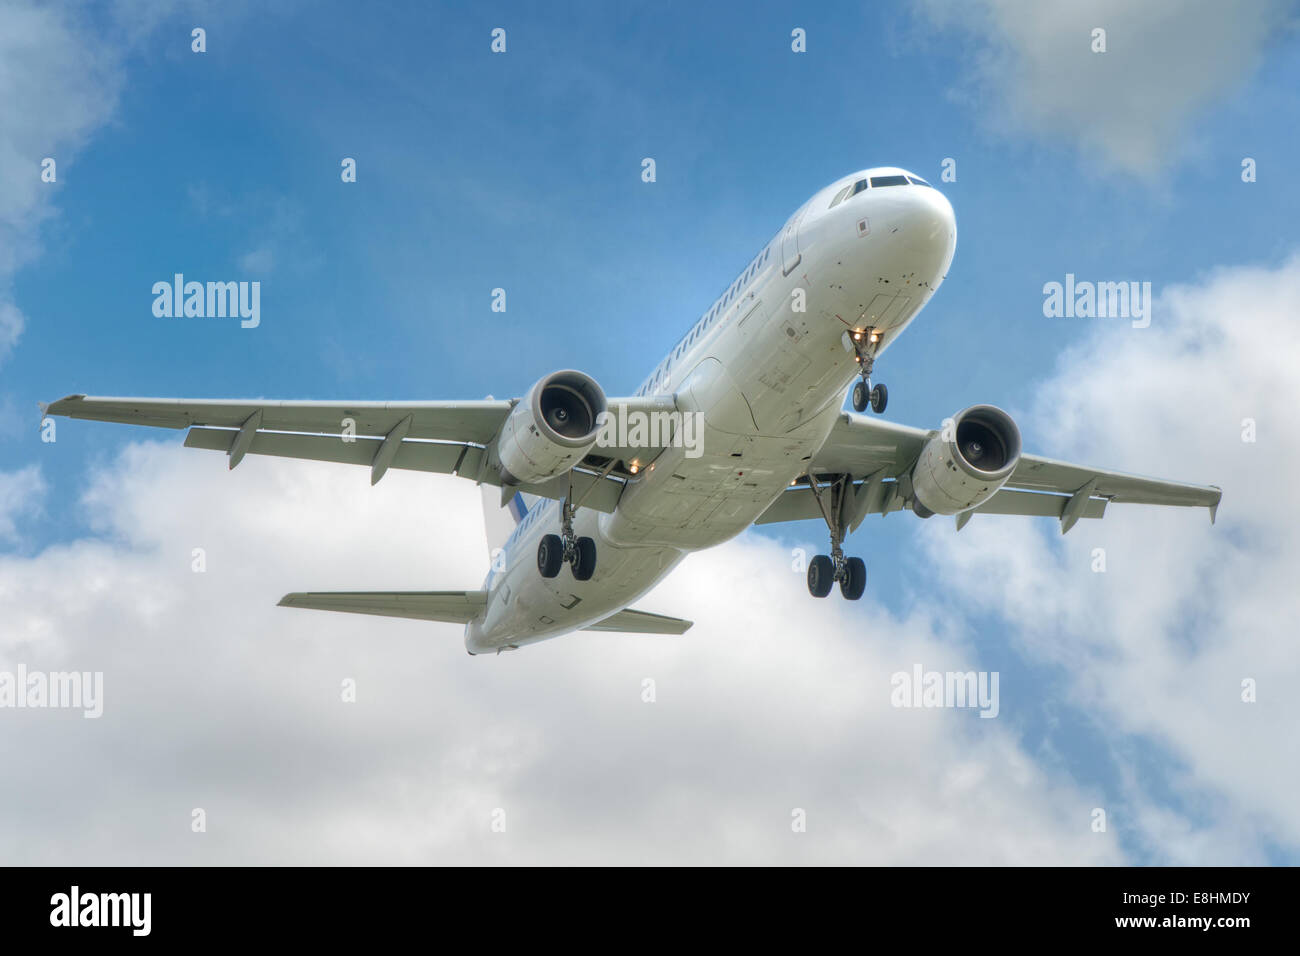 big jet plane taking off on blue cloudy sky nackground - Stock Image